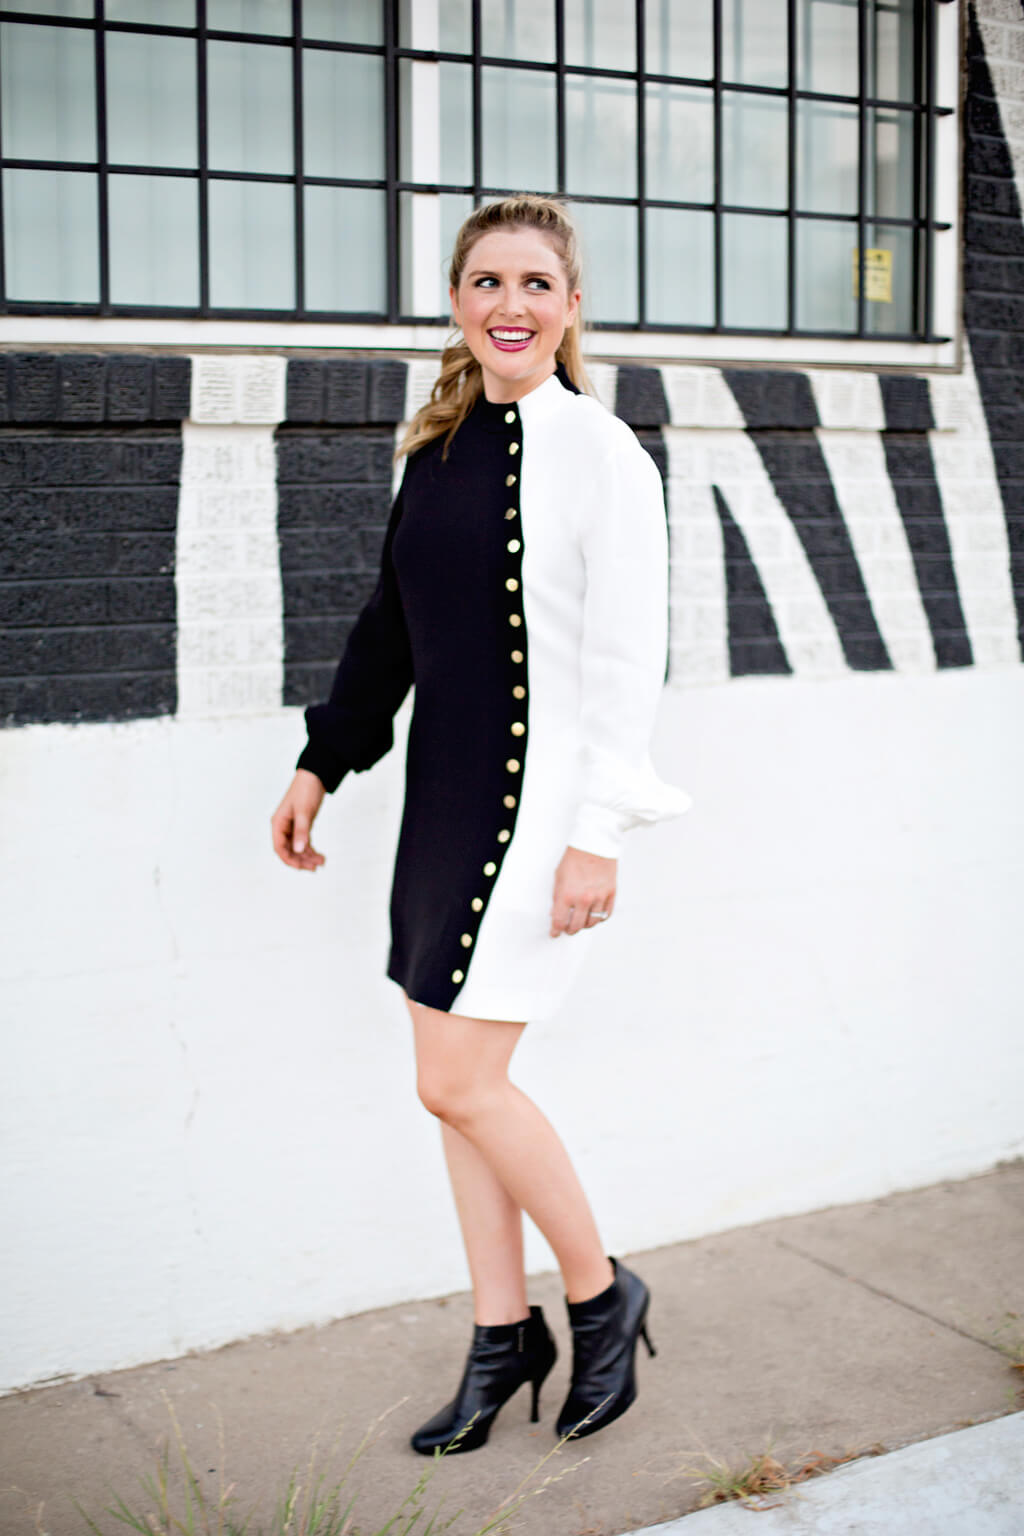 Black and White Dress // Rachel Zoe // Fall Fashion // www.https://www.thehisfor.com